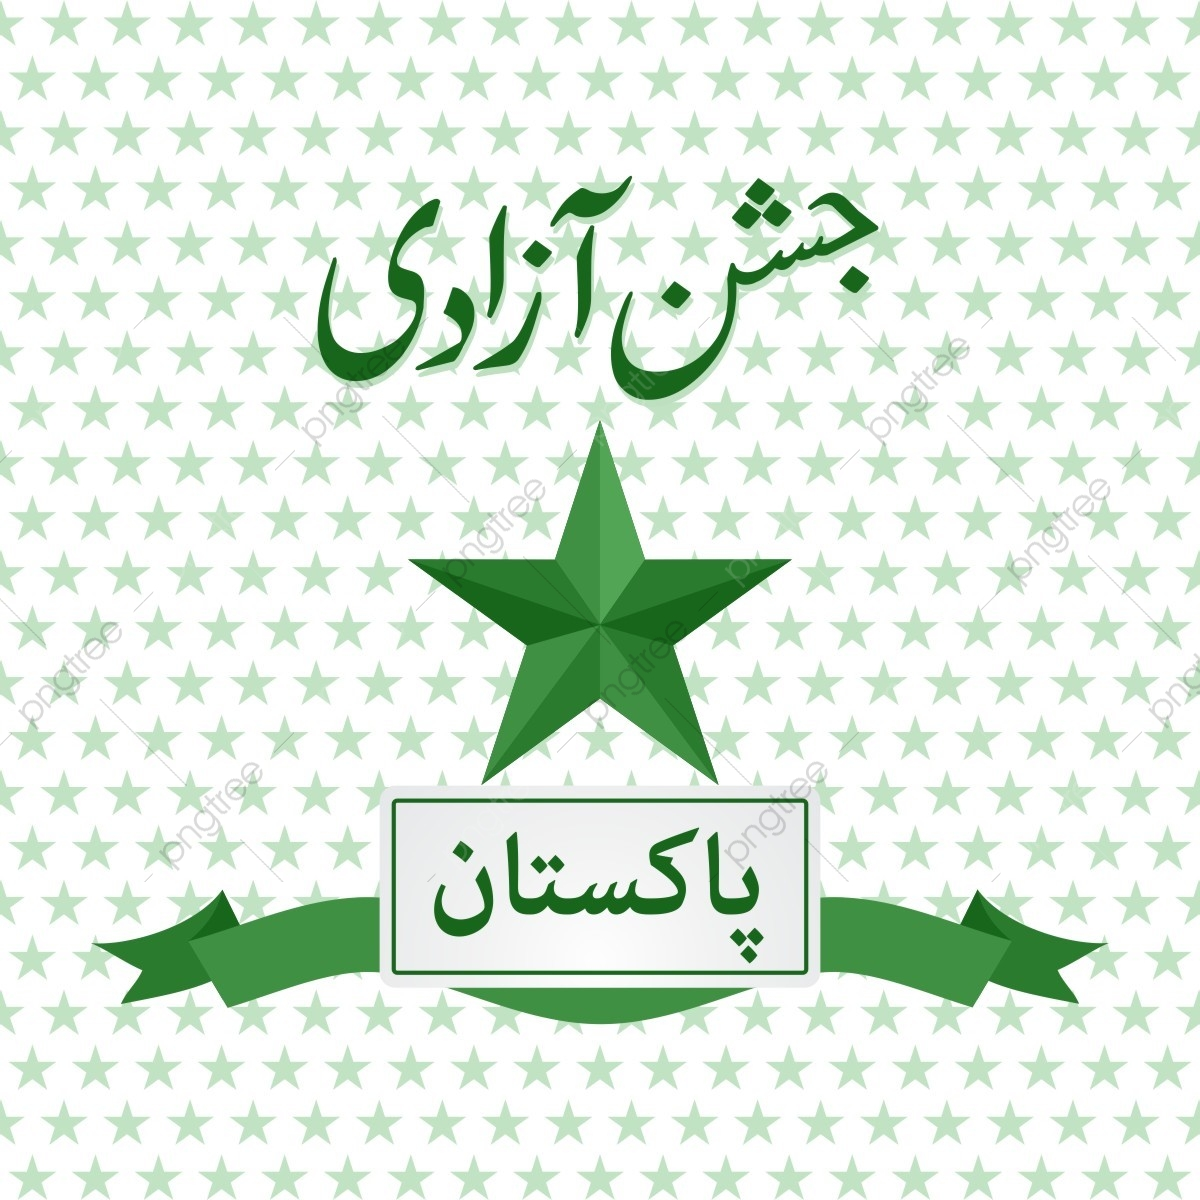 14 August Pakistan Happy Independence Day Star Green Flag Of Pakistan Png And Vector With Transparent Background For Free Download